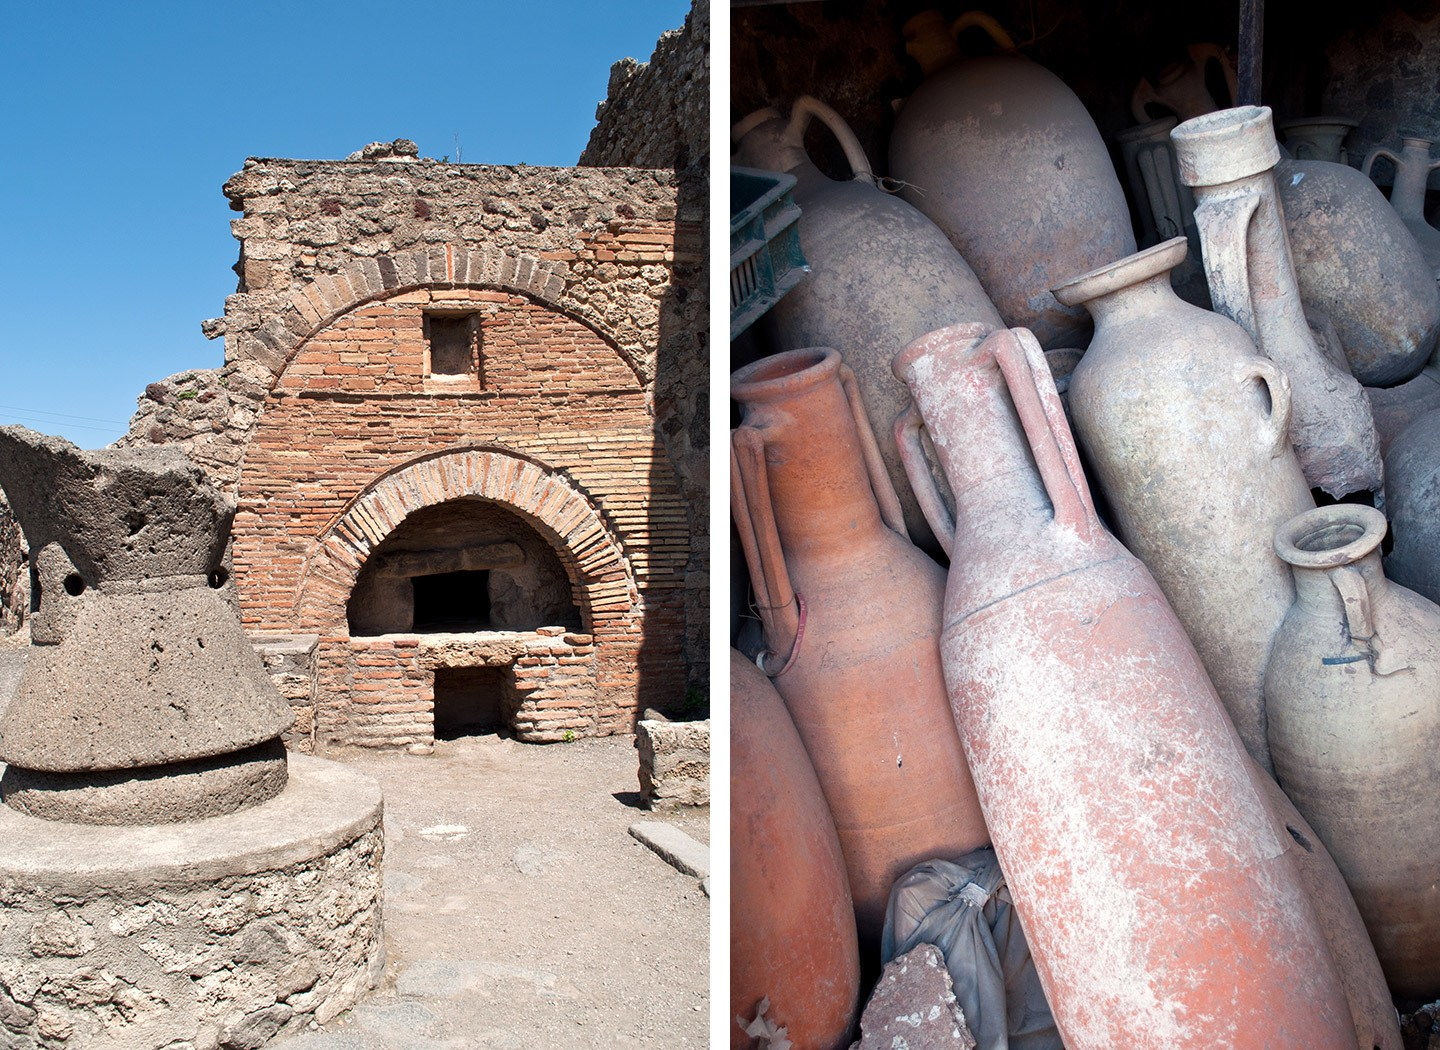 A Pompeii archway and amphorae clay jars